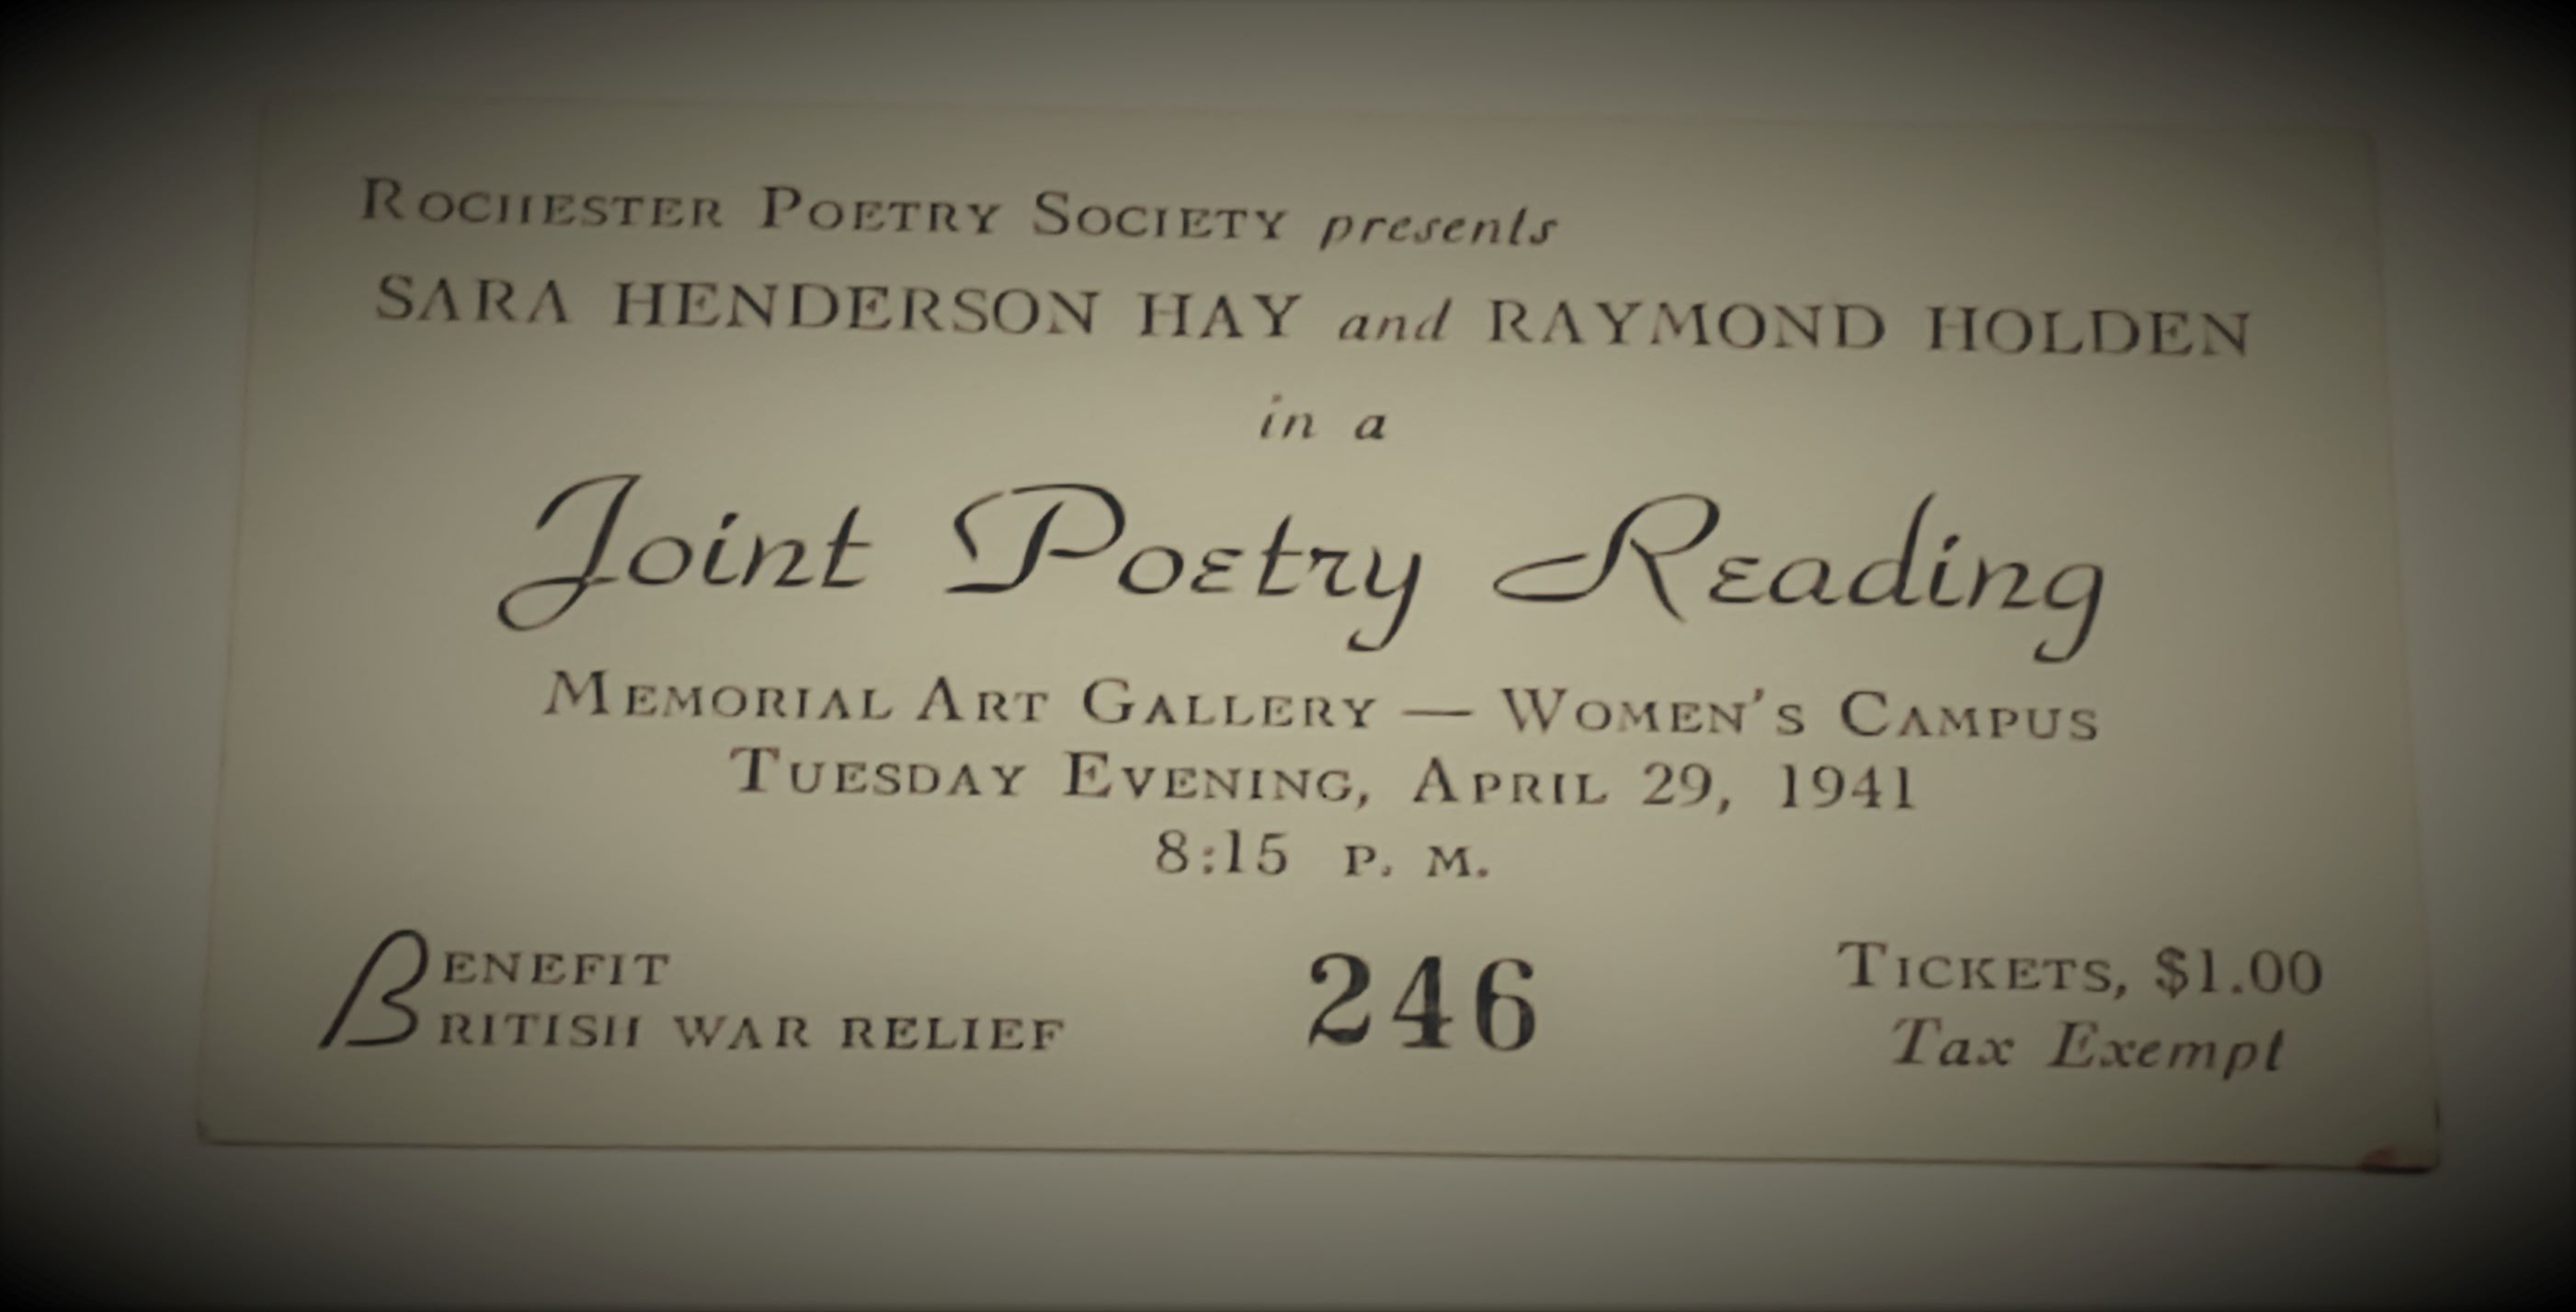 Rochester Poetry Society 1941 event